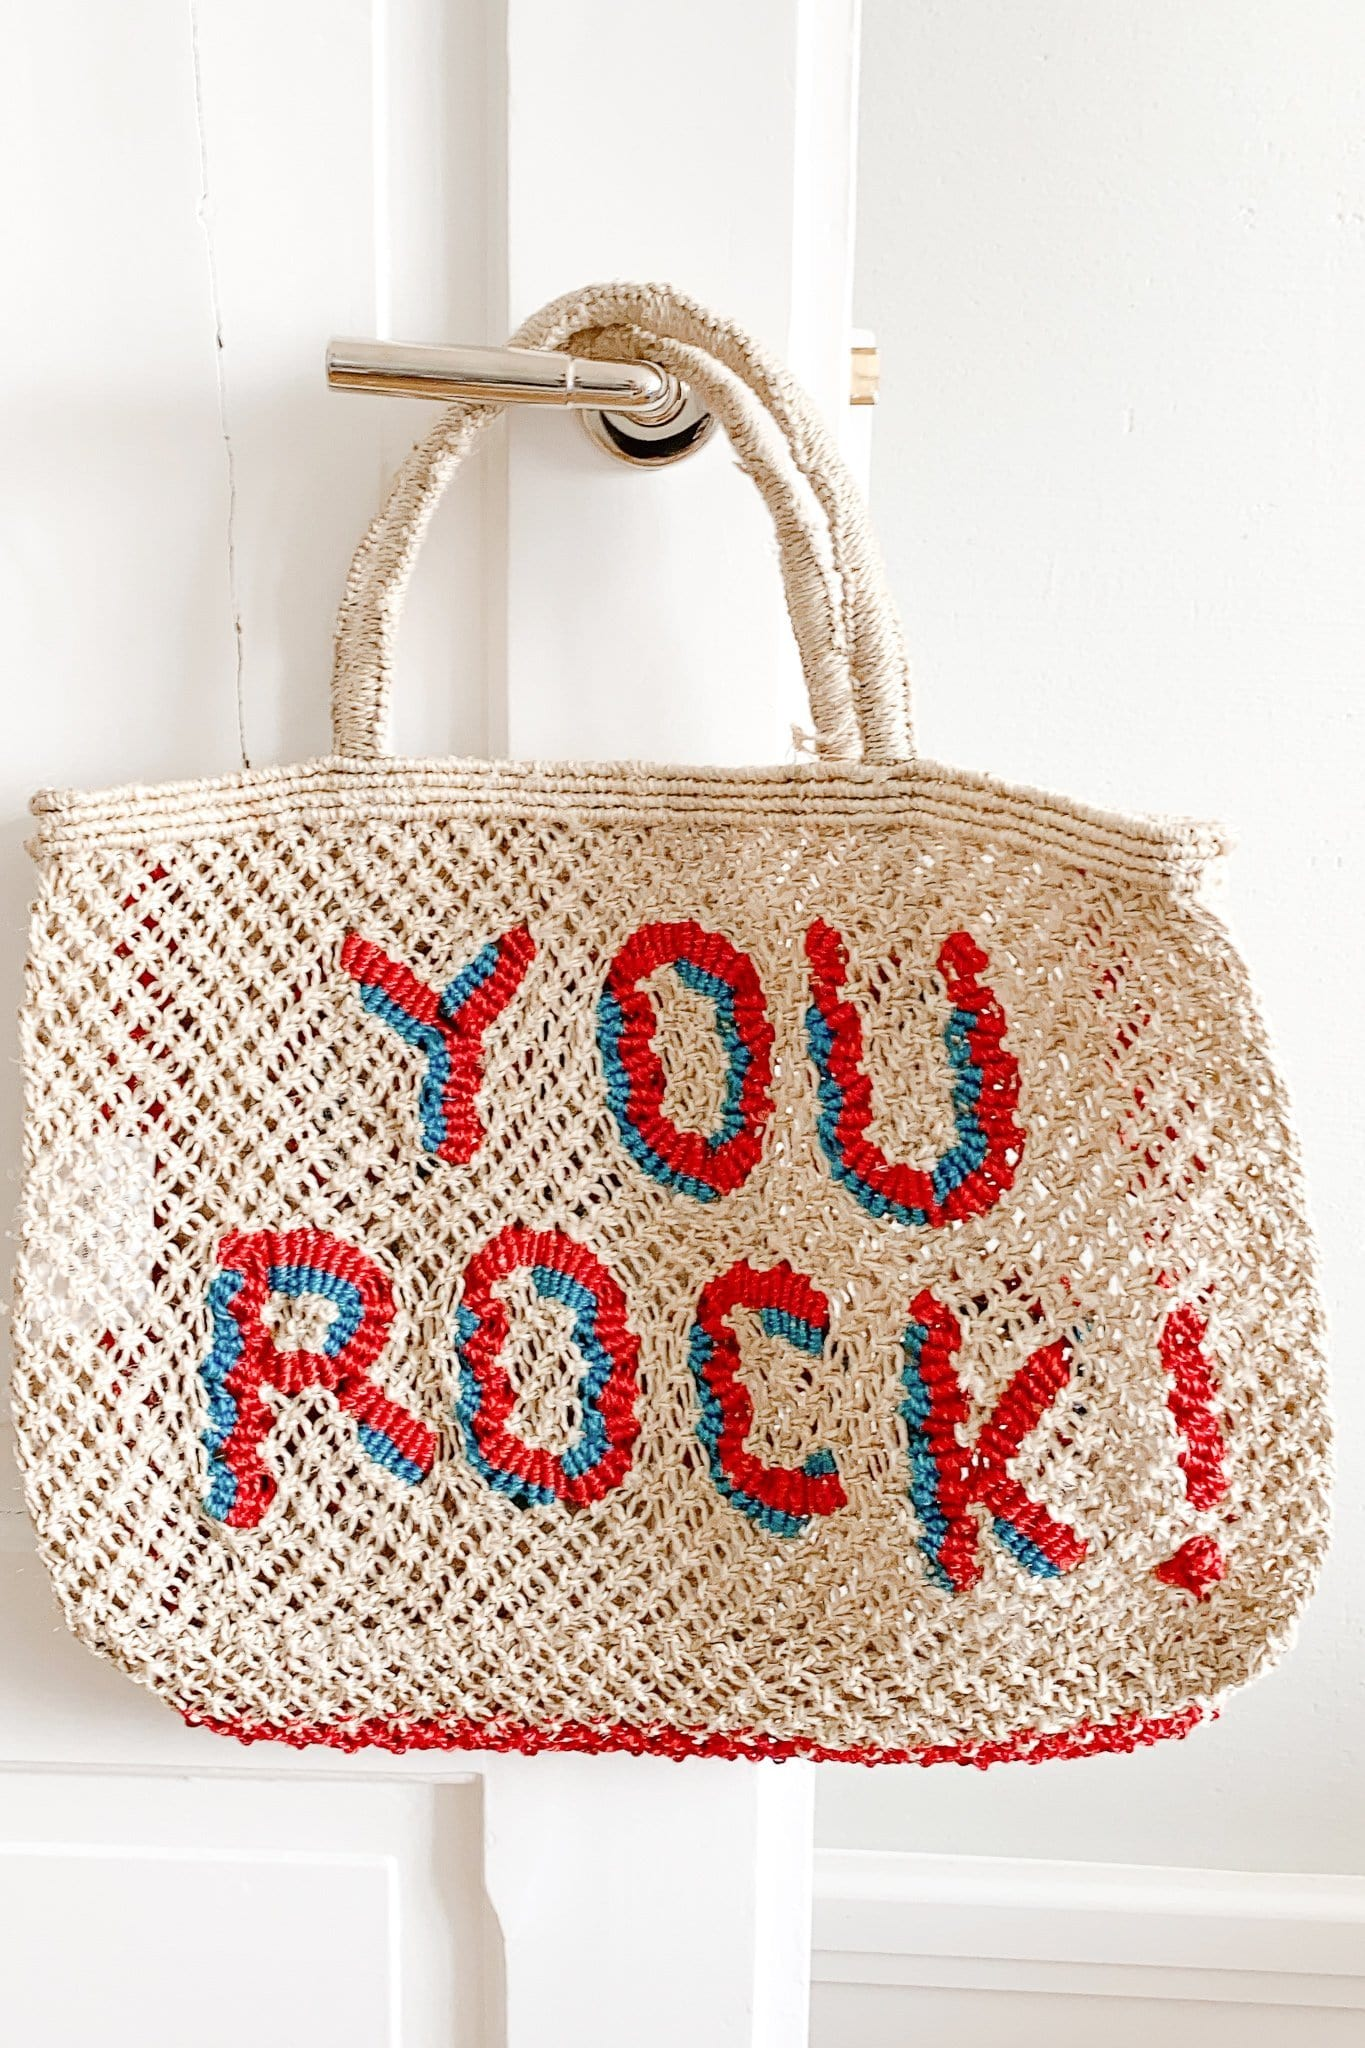 You Rock! handcrafted bag - The Jacksons